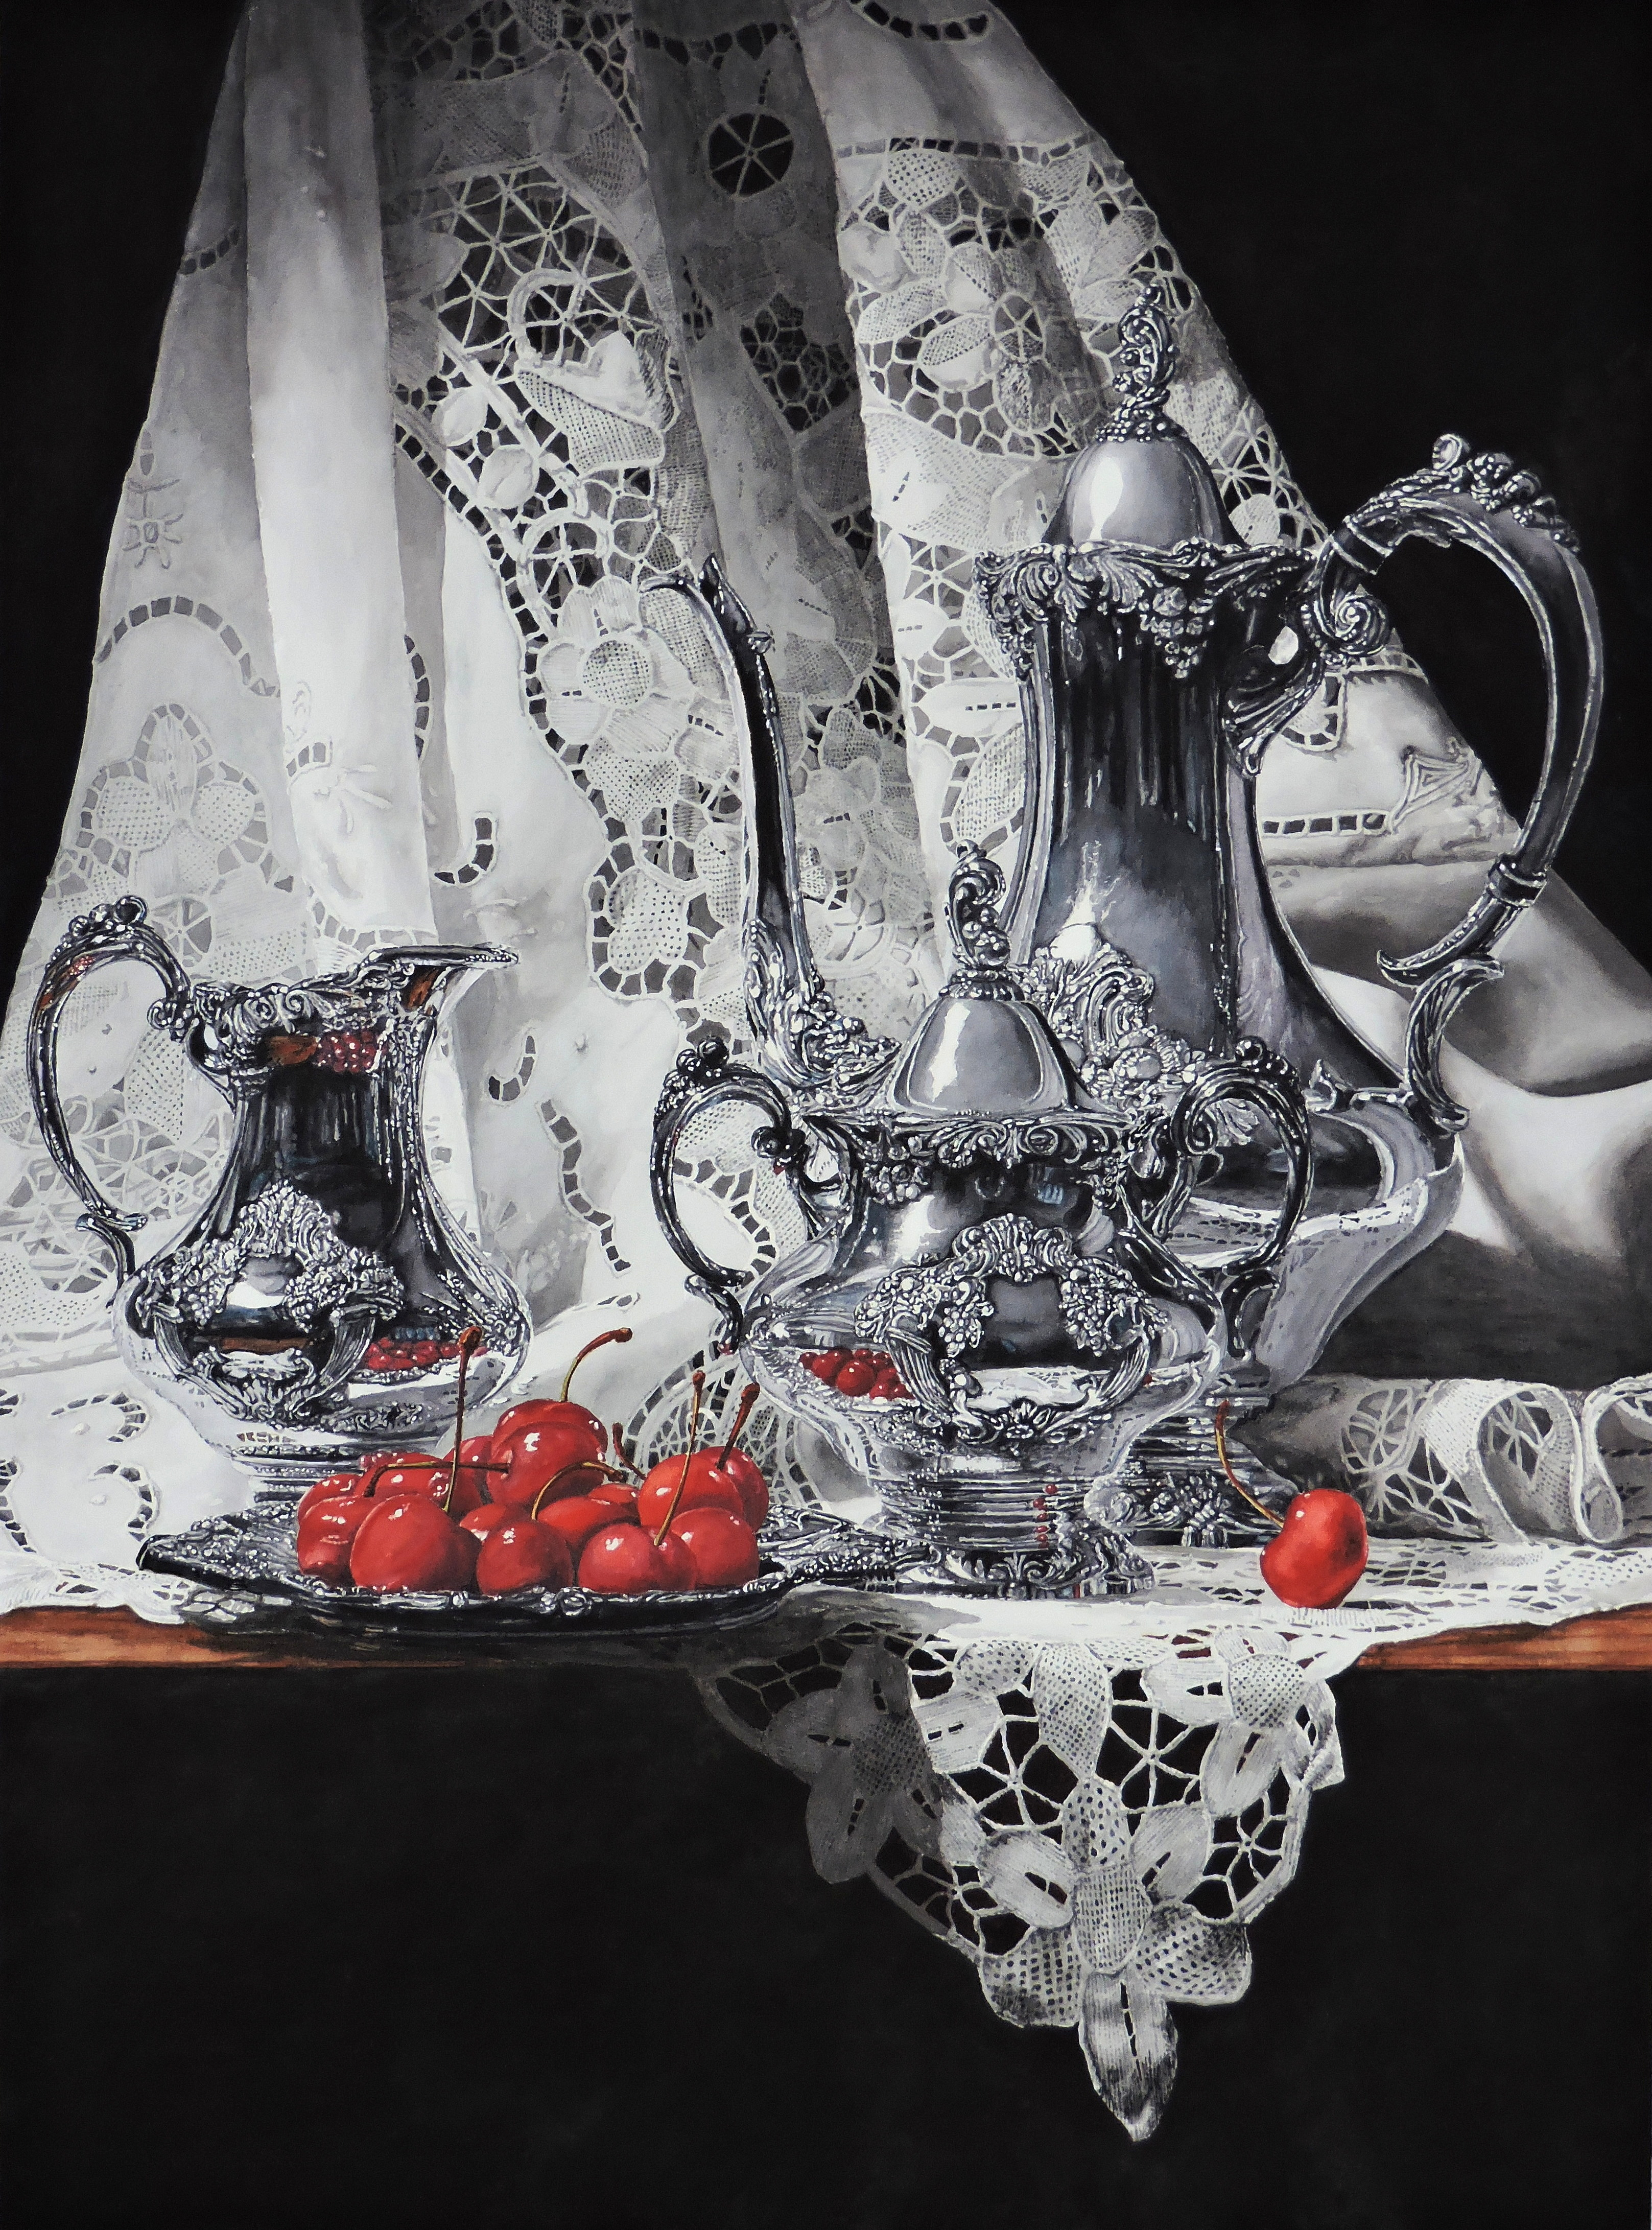 I am pleased and honored to report that my painting black white red has won best in show in the richeson75 still life floral competition